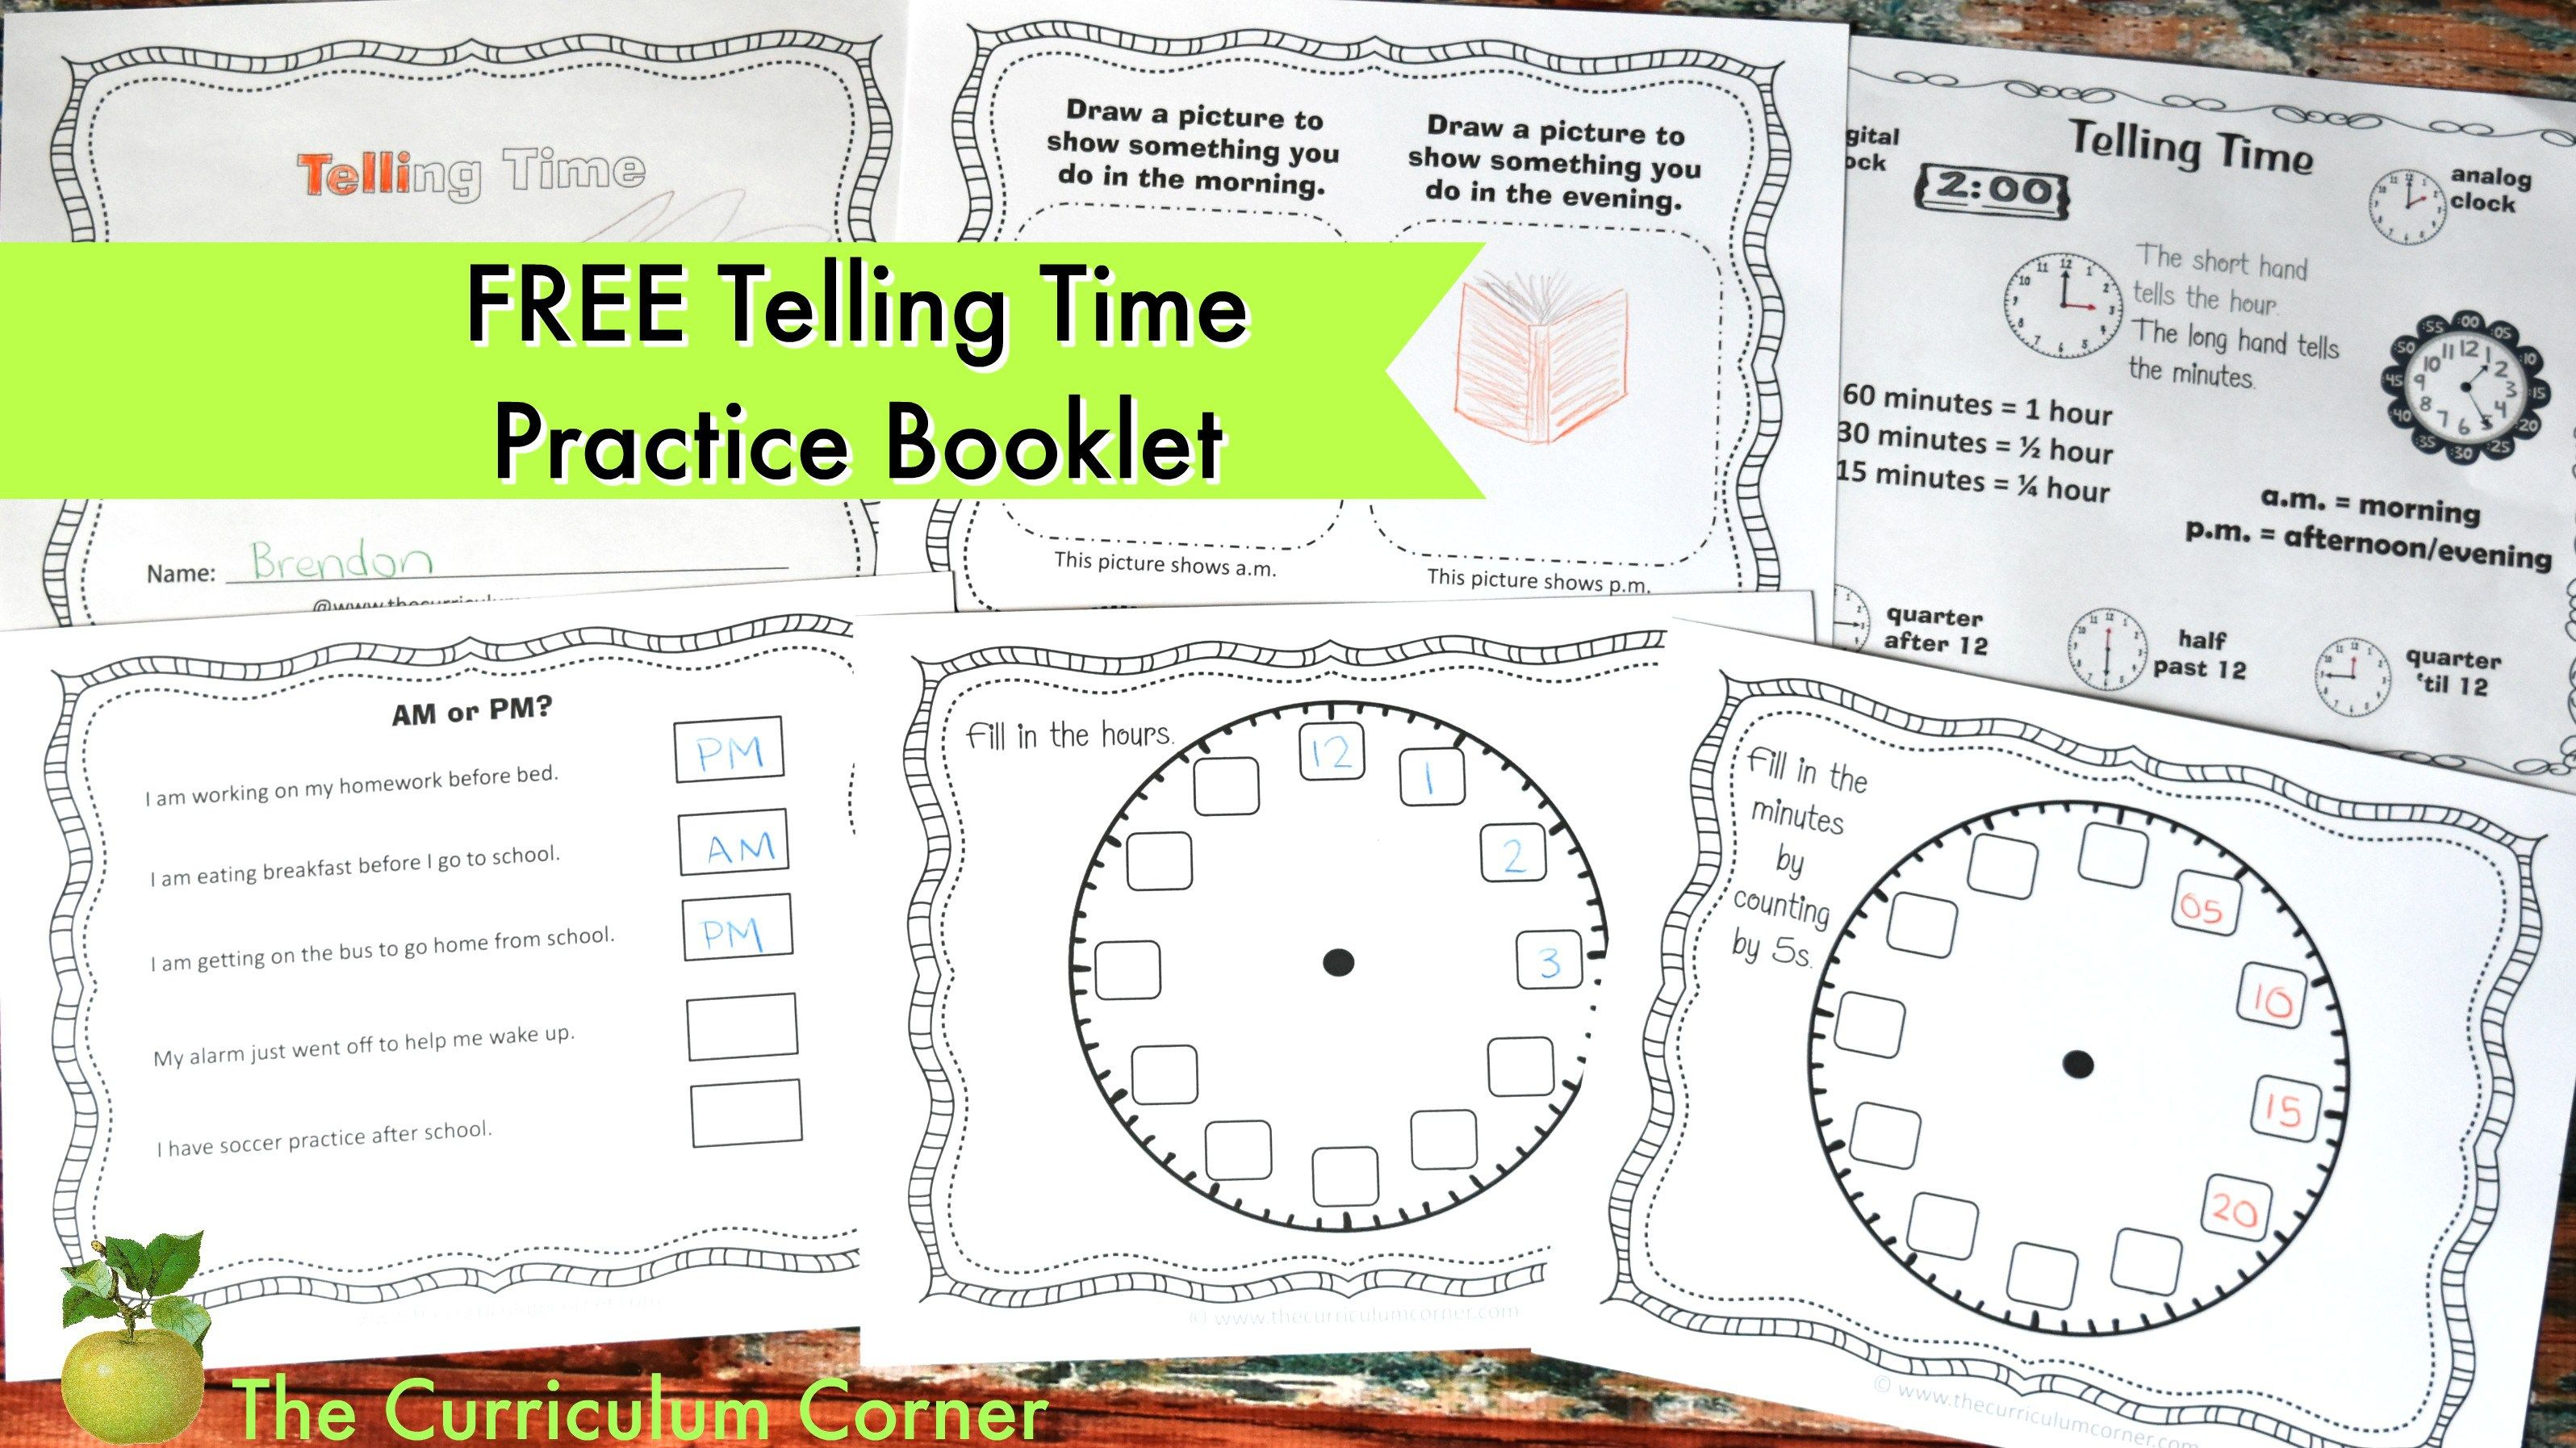 Telling Time Practice Booklet 2